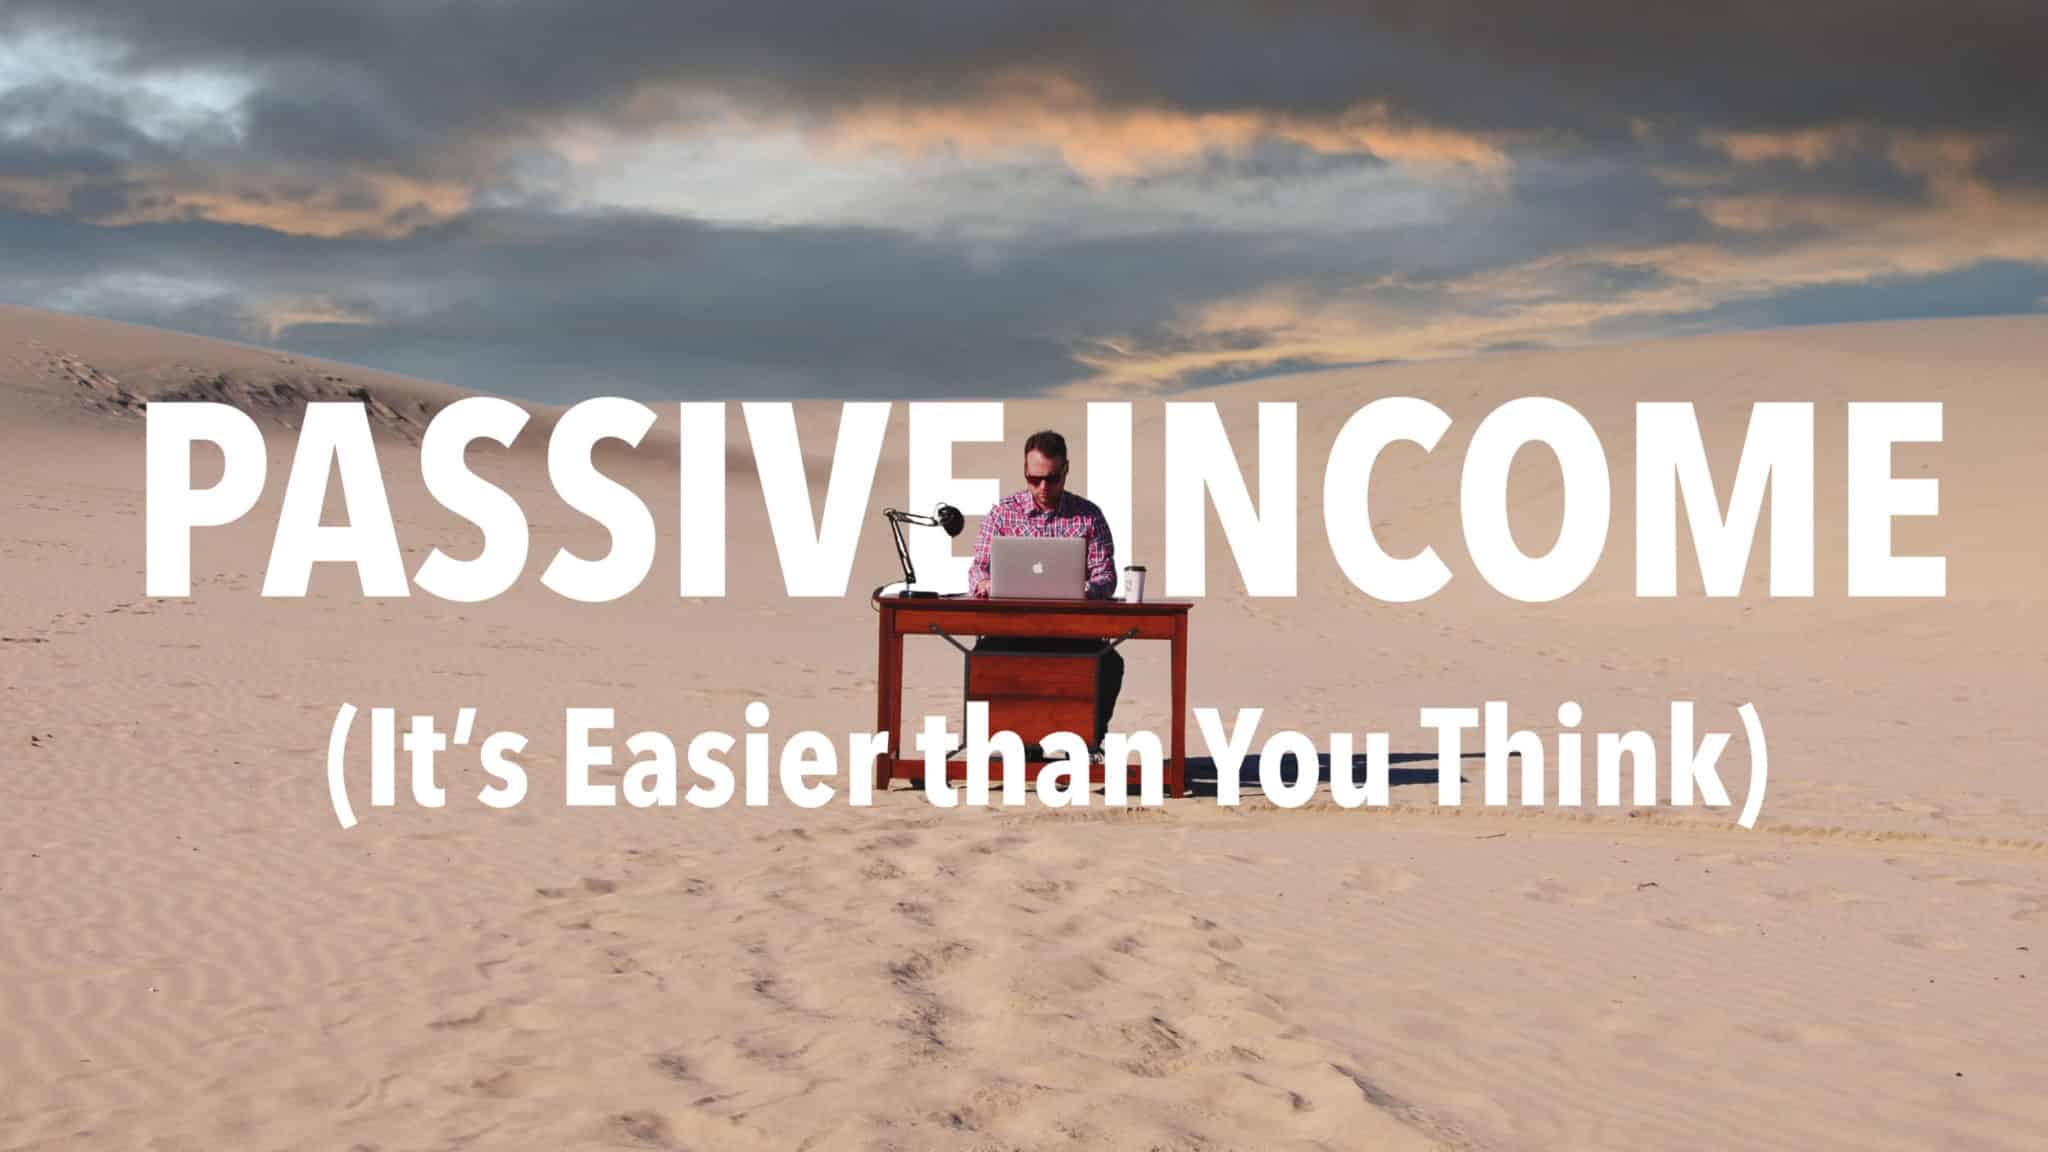 31 Ways to Make More Passive Income (In the Next 7 Days)